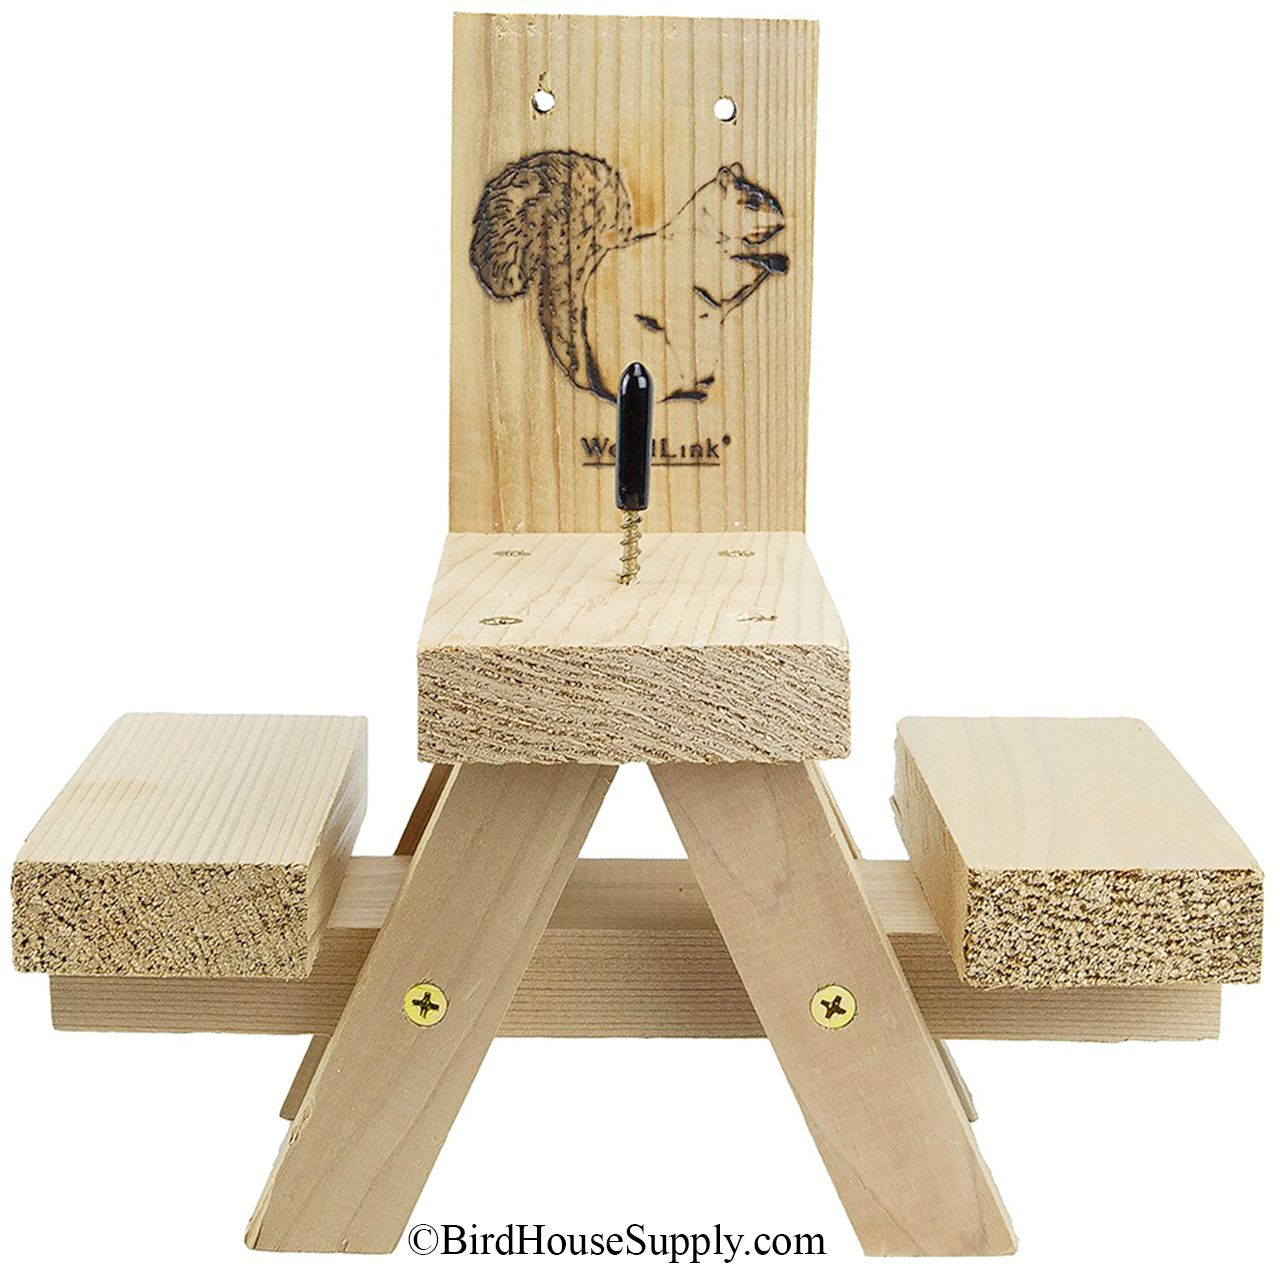 Woodlink Picnic Table For Corn Squirrel Feeder With Images